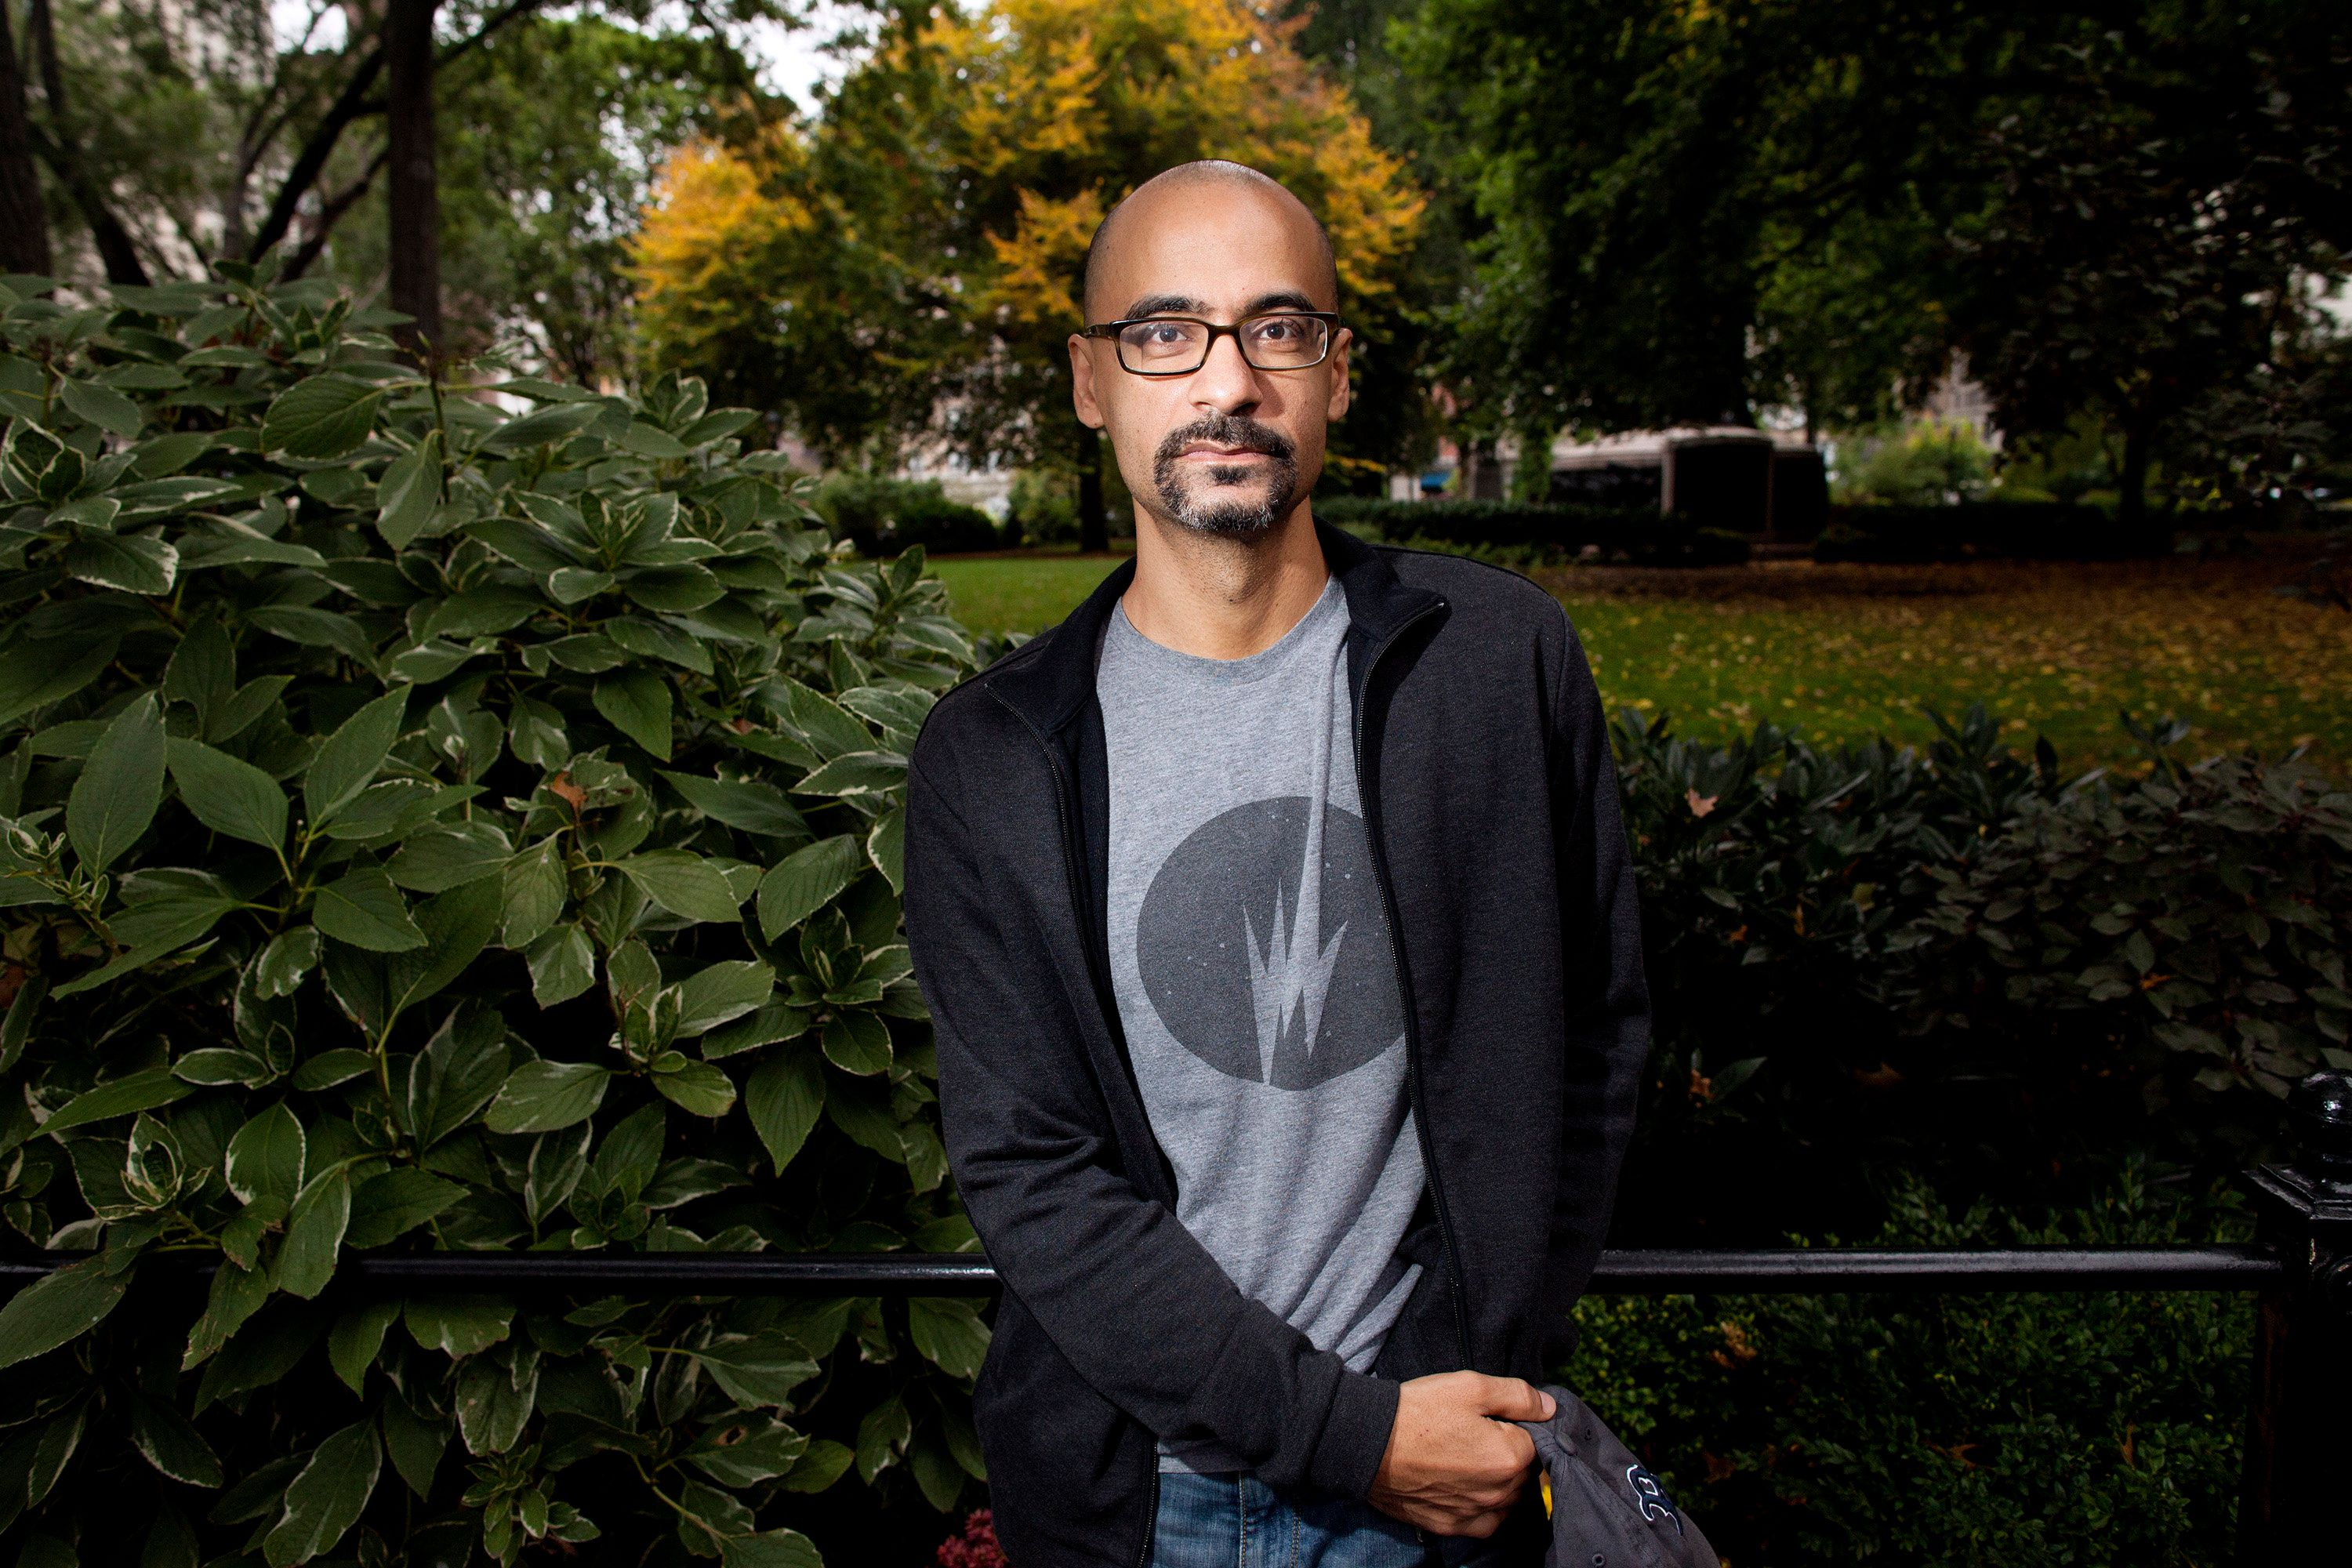 Top editors of the Boston Review announced this week that they would retain Junot Díaz on staff. The news led to